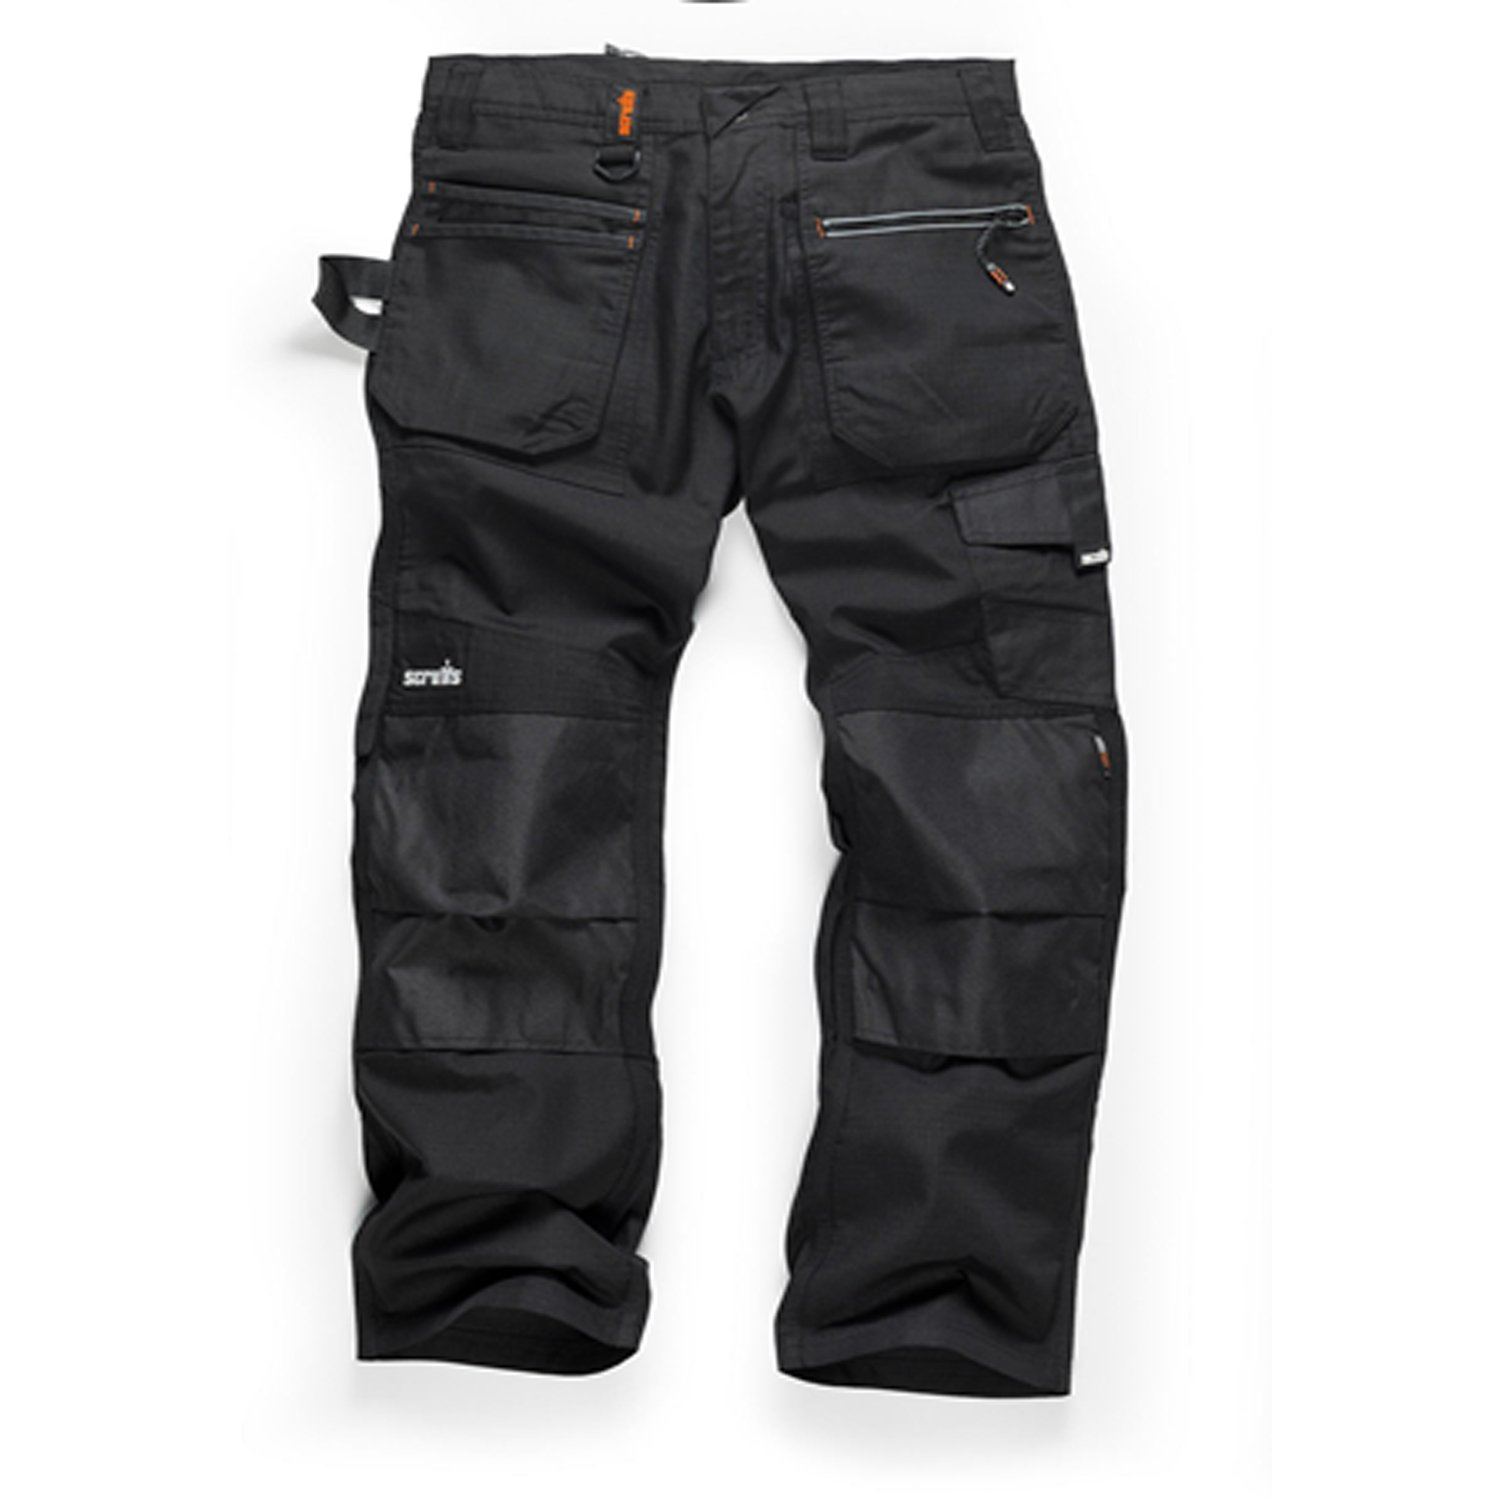 Various Sizes, Short, Regular and Long Leg Scruffs Ripstop Trade Hardwearing Black Work Trousers with Multiple /& Knee Pad Pockets